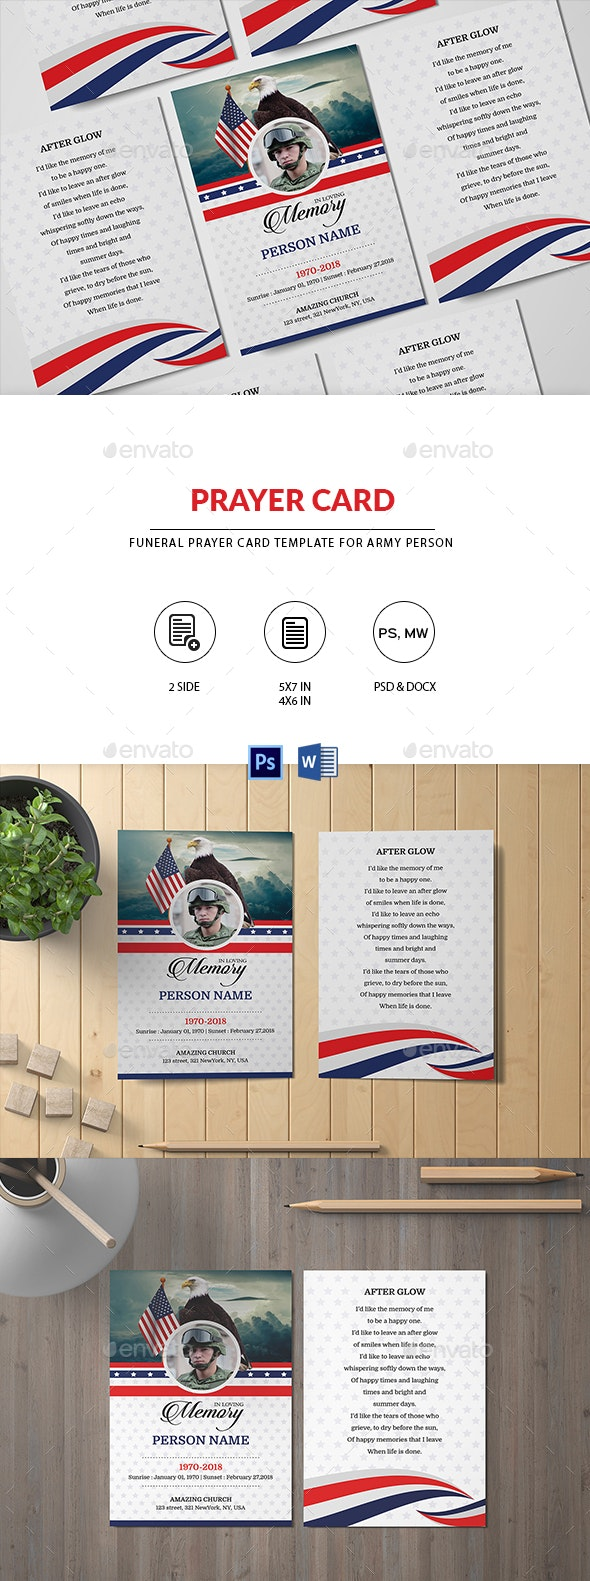 Funeral Prayer Card Template for ARMY - Cards & Invites Print Templates